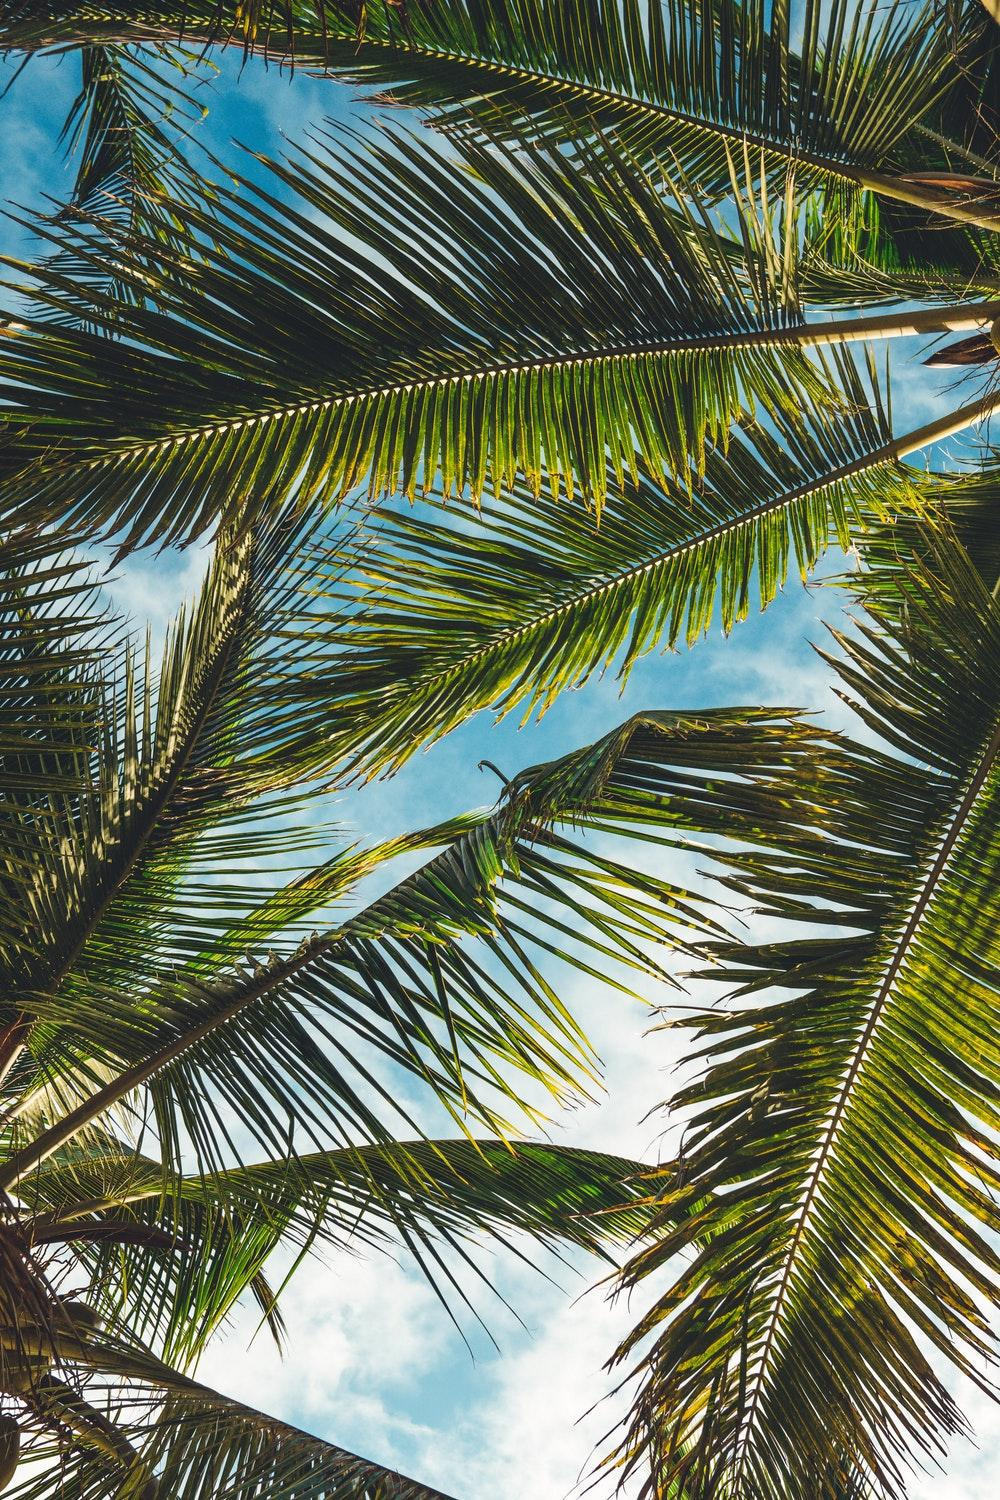 Tree, leaf, plant and palm tree HD photo by Peter Fogden